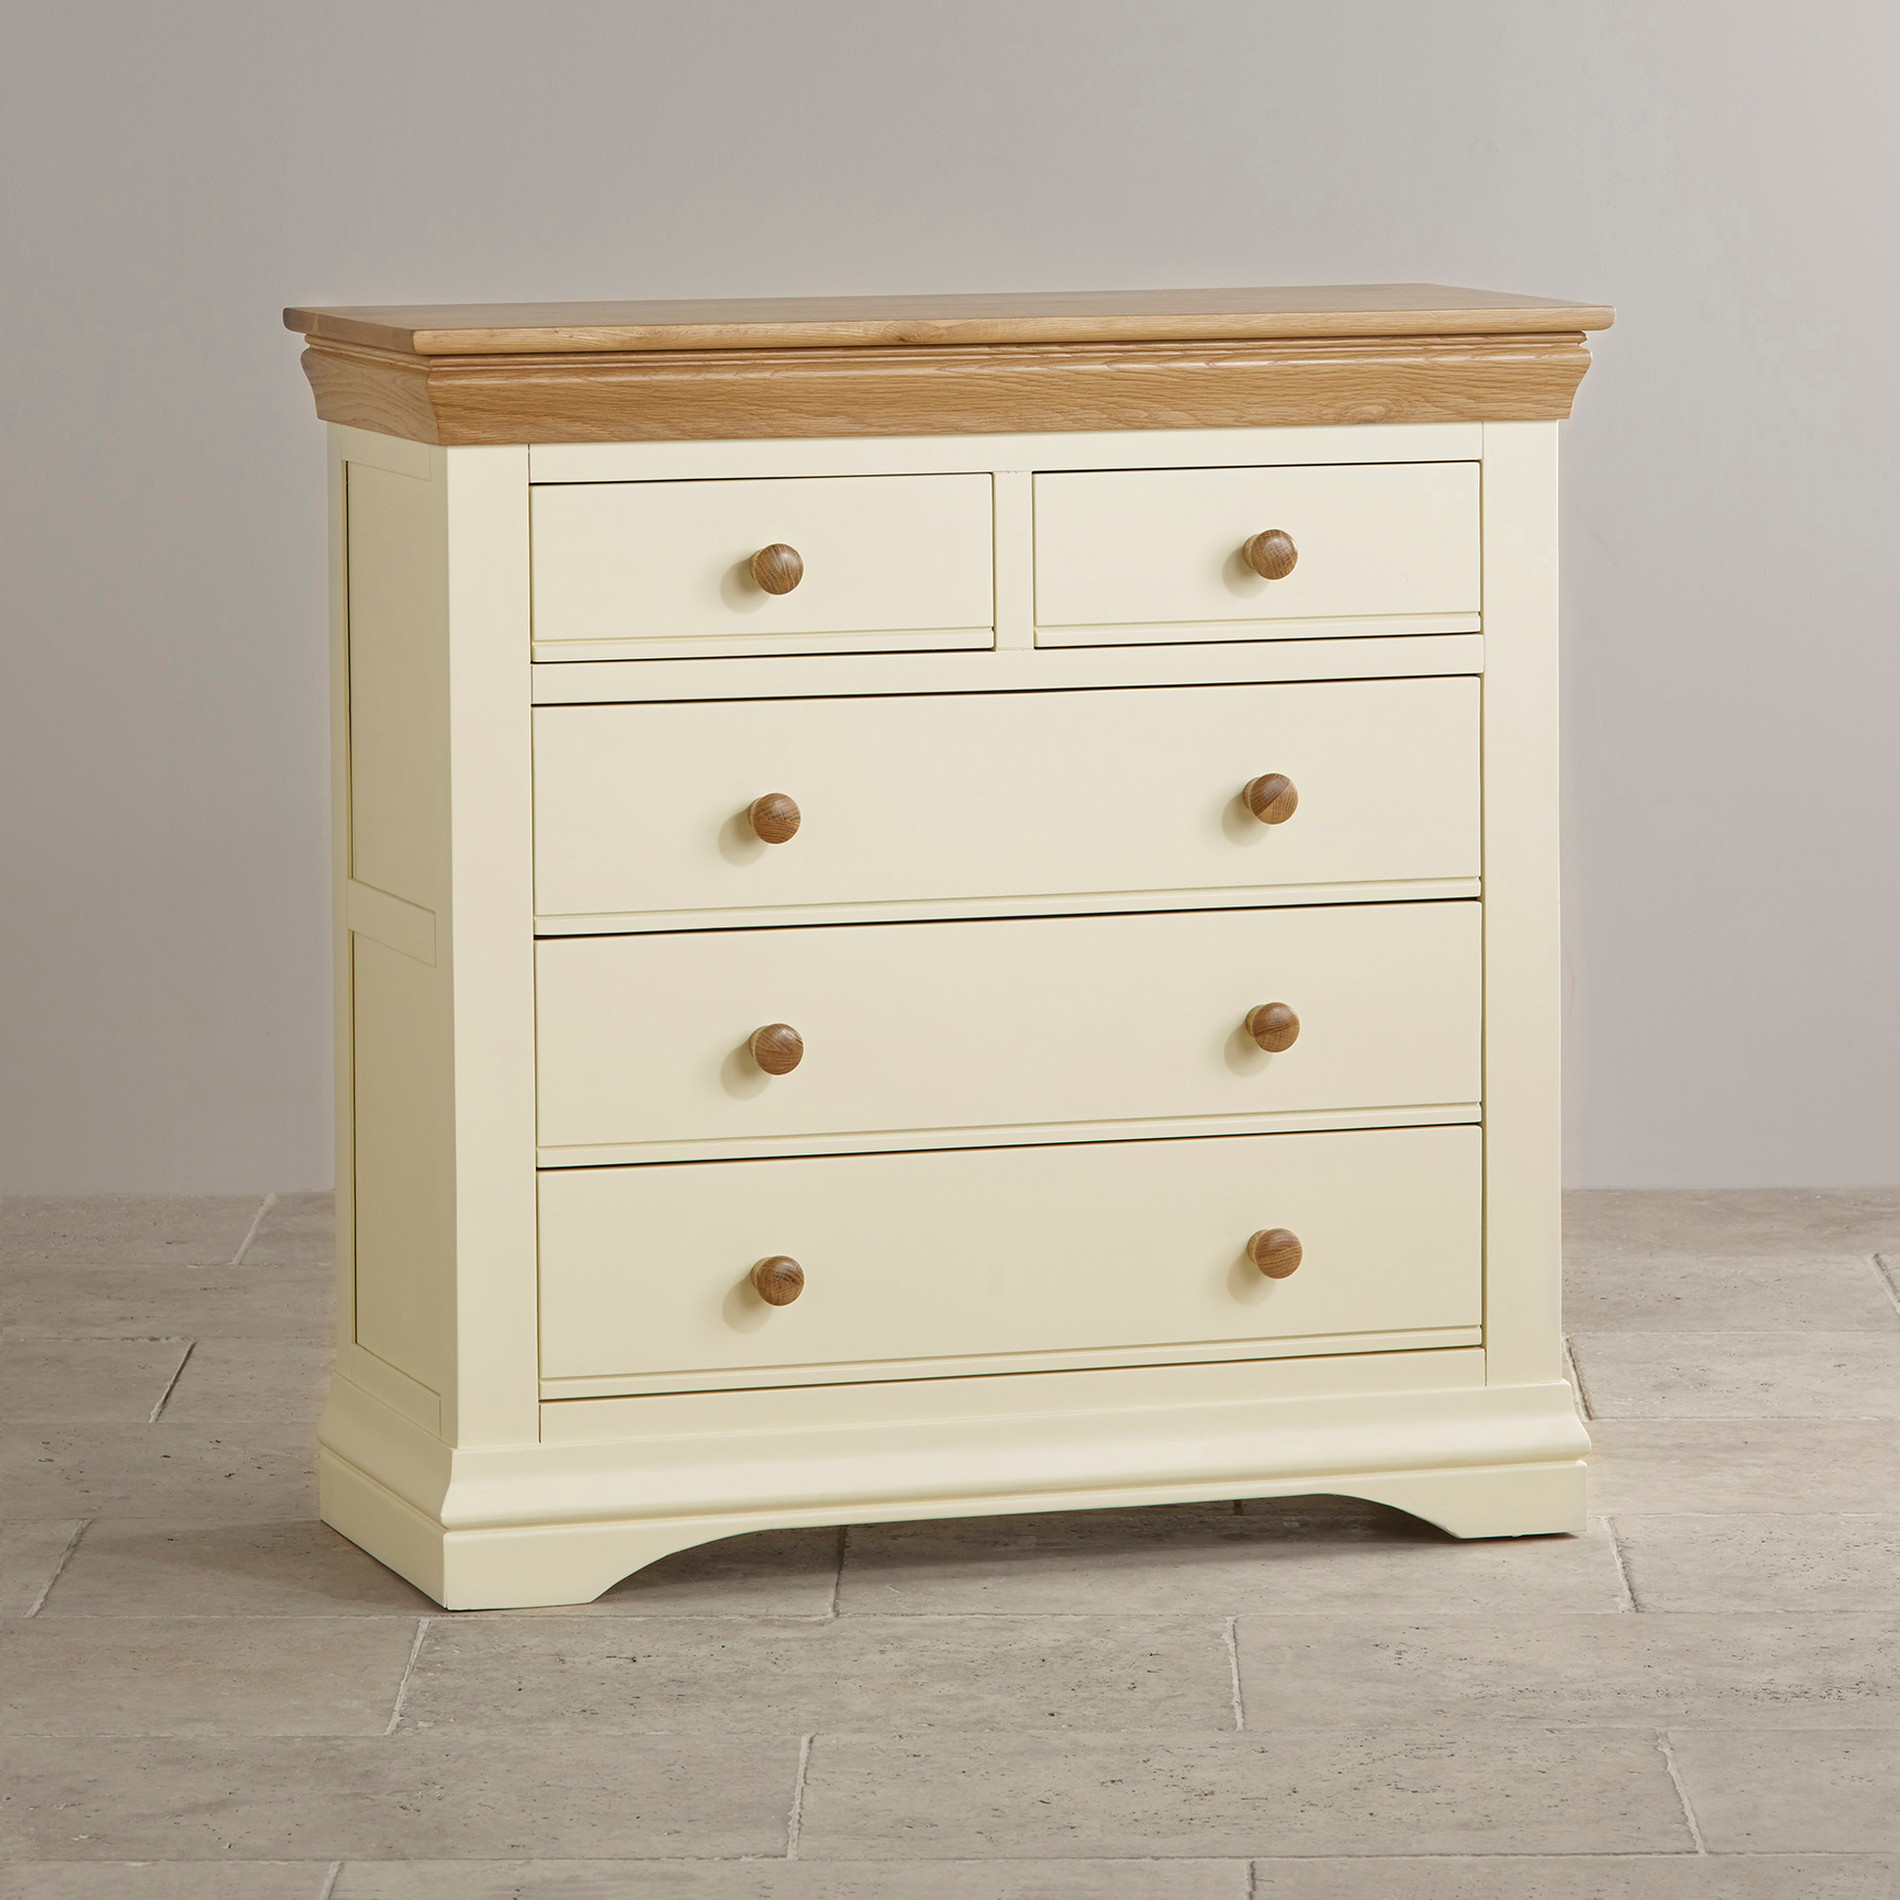 Country Cottage Painted 3 2 Chest of Drawers in Natural Oak